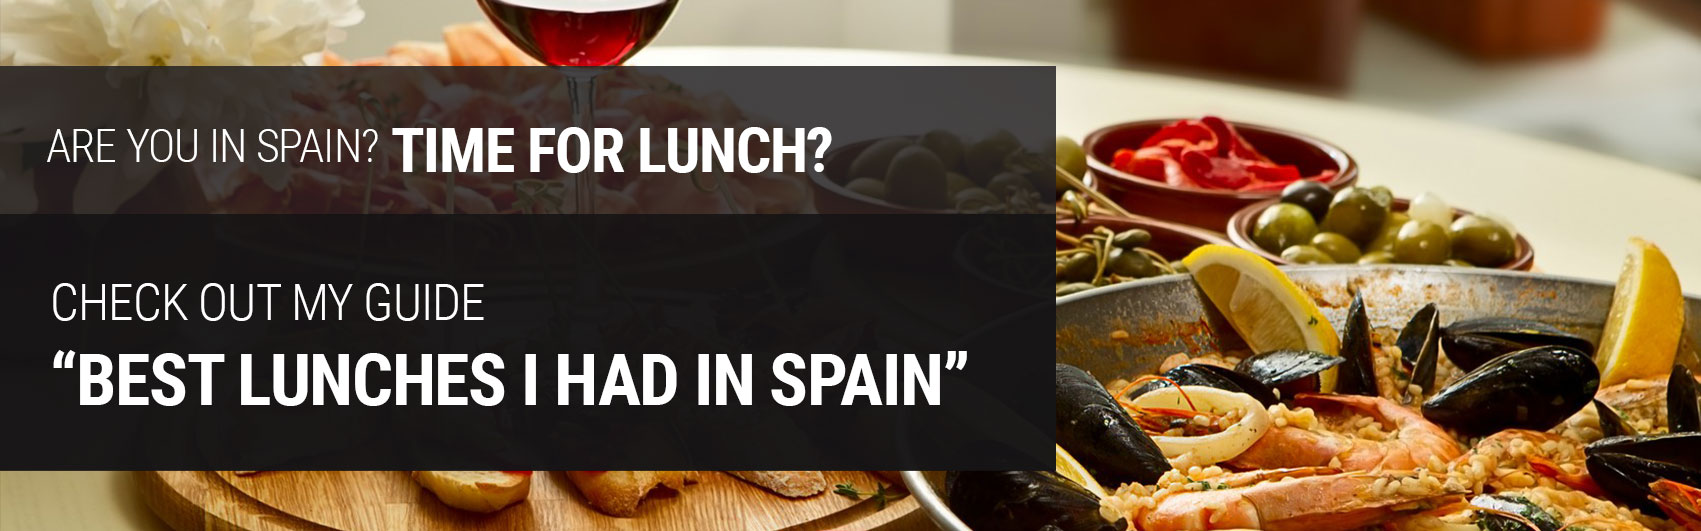 spain-lunch-personalization